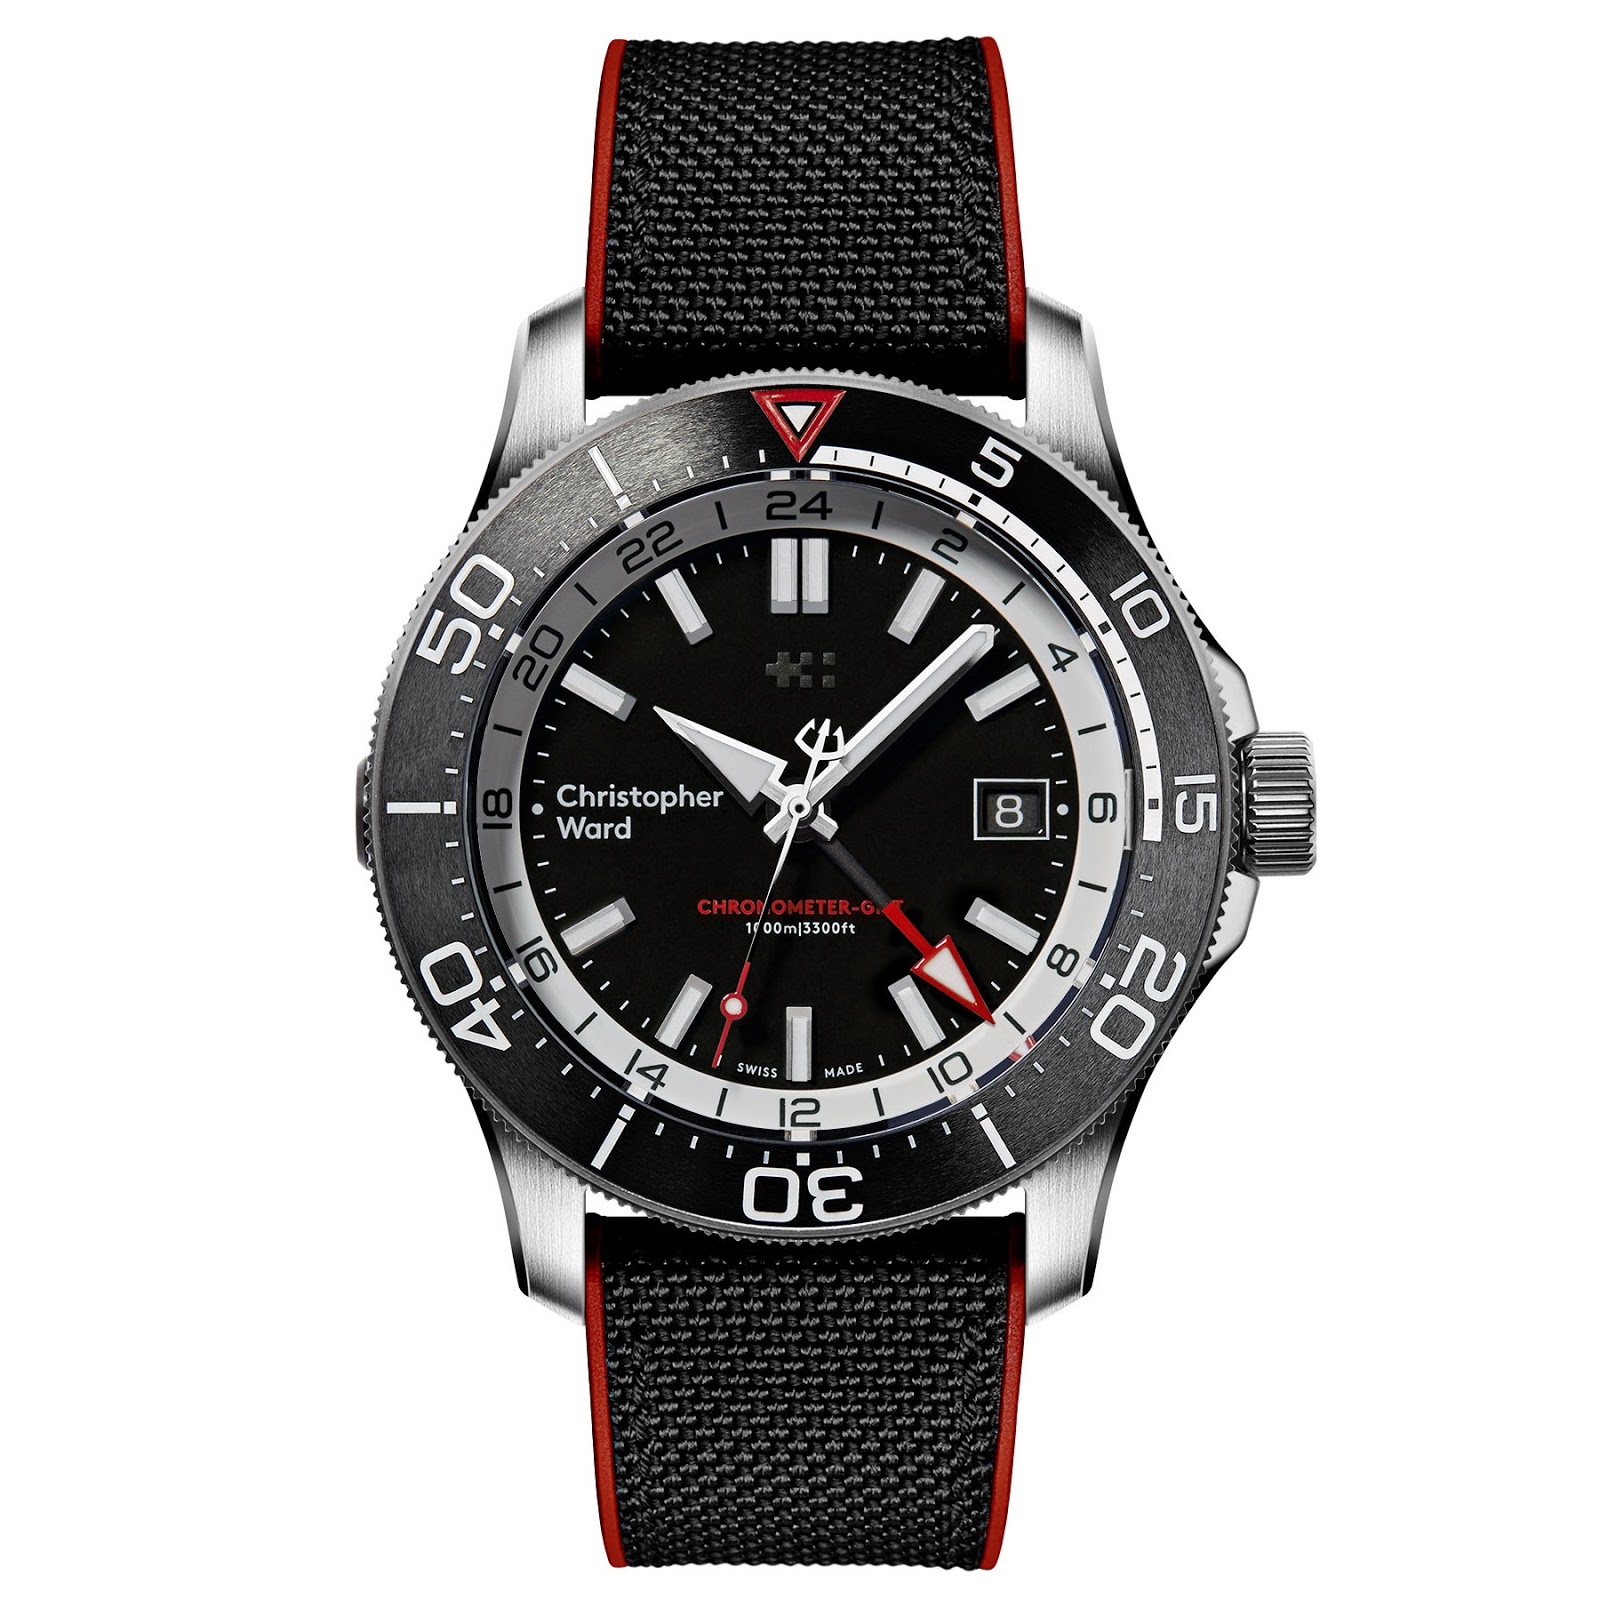 Christopher Ward's new C65 GMT Worldtimer and C60 Elite GMT 1000 Christopher+Ward+C60+Elite+GMT+1000+03